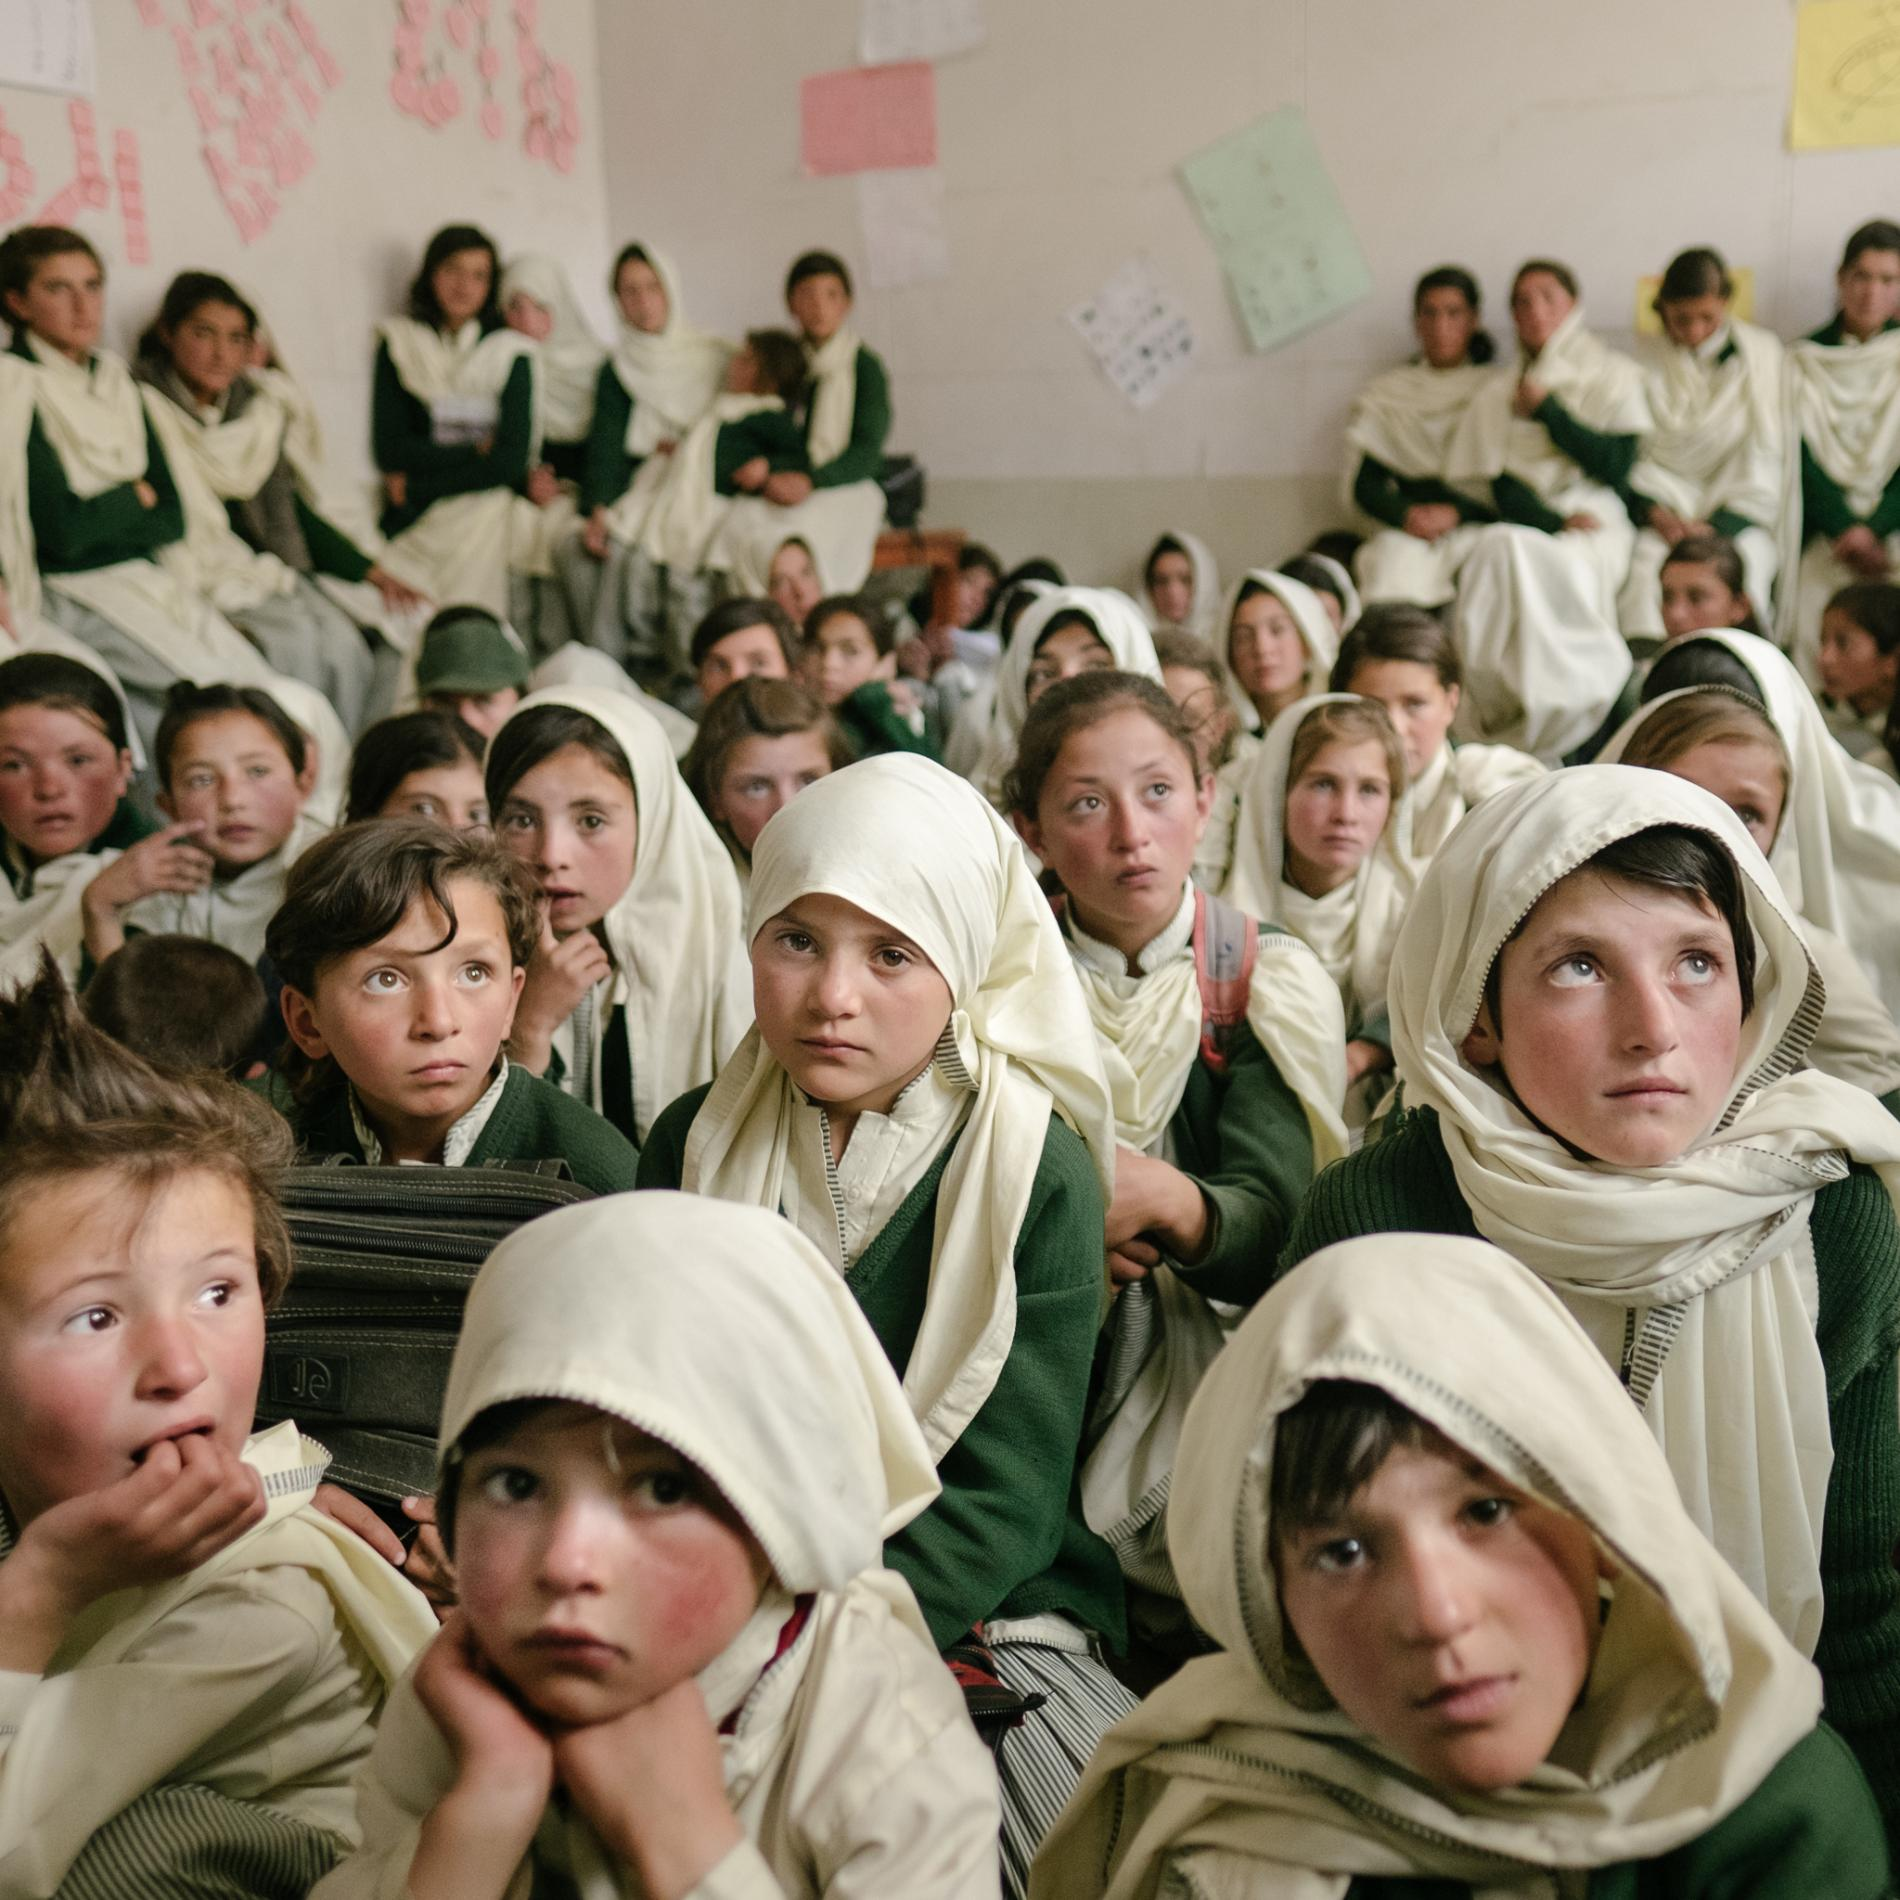 57 Pictures of the year - Natgeo - Tinhte.vn 37.jpg